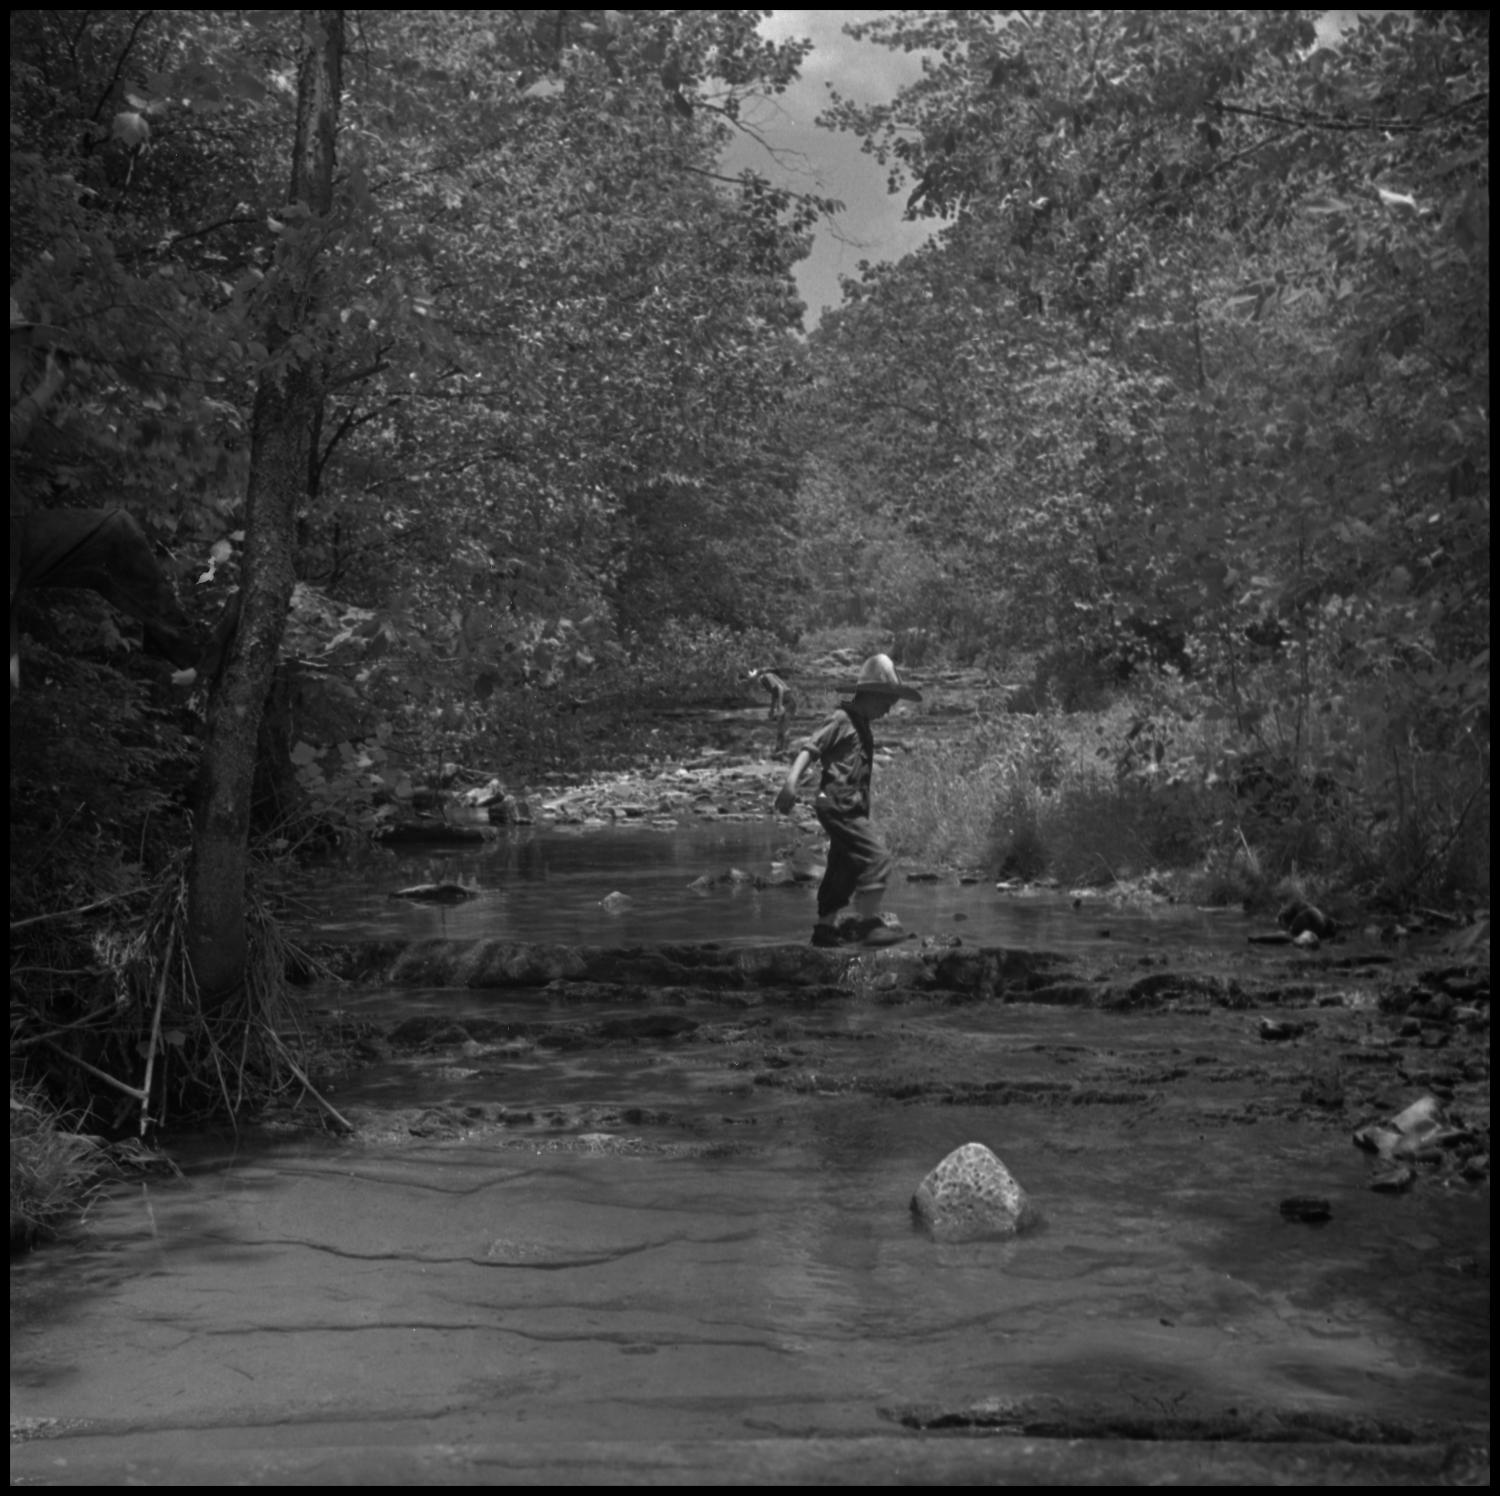 [Father and son walking the stream], Photograph of young Roy McCrary crossing a stream at Vertical Acres. From Junebug Clark: A father and son walking through the stream in the Hills of Tennessee, looking for lifes treasures. This is something Joe did with his siblings and his father after a days work. Peaceful and beautiful scene of a quiet stream to cool your feet and clear your mind.,